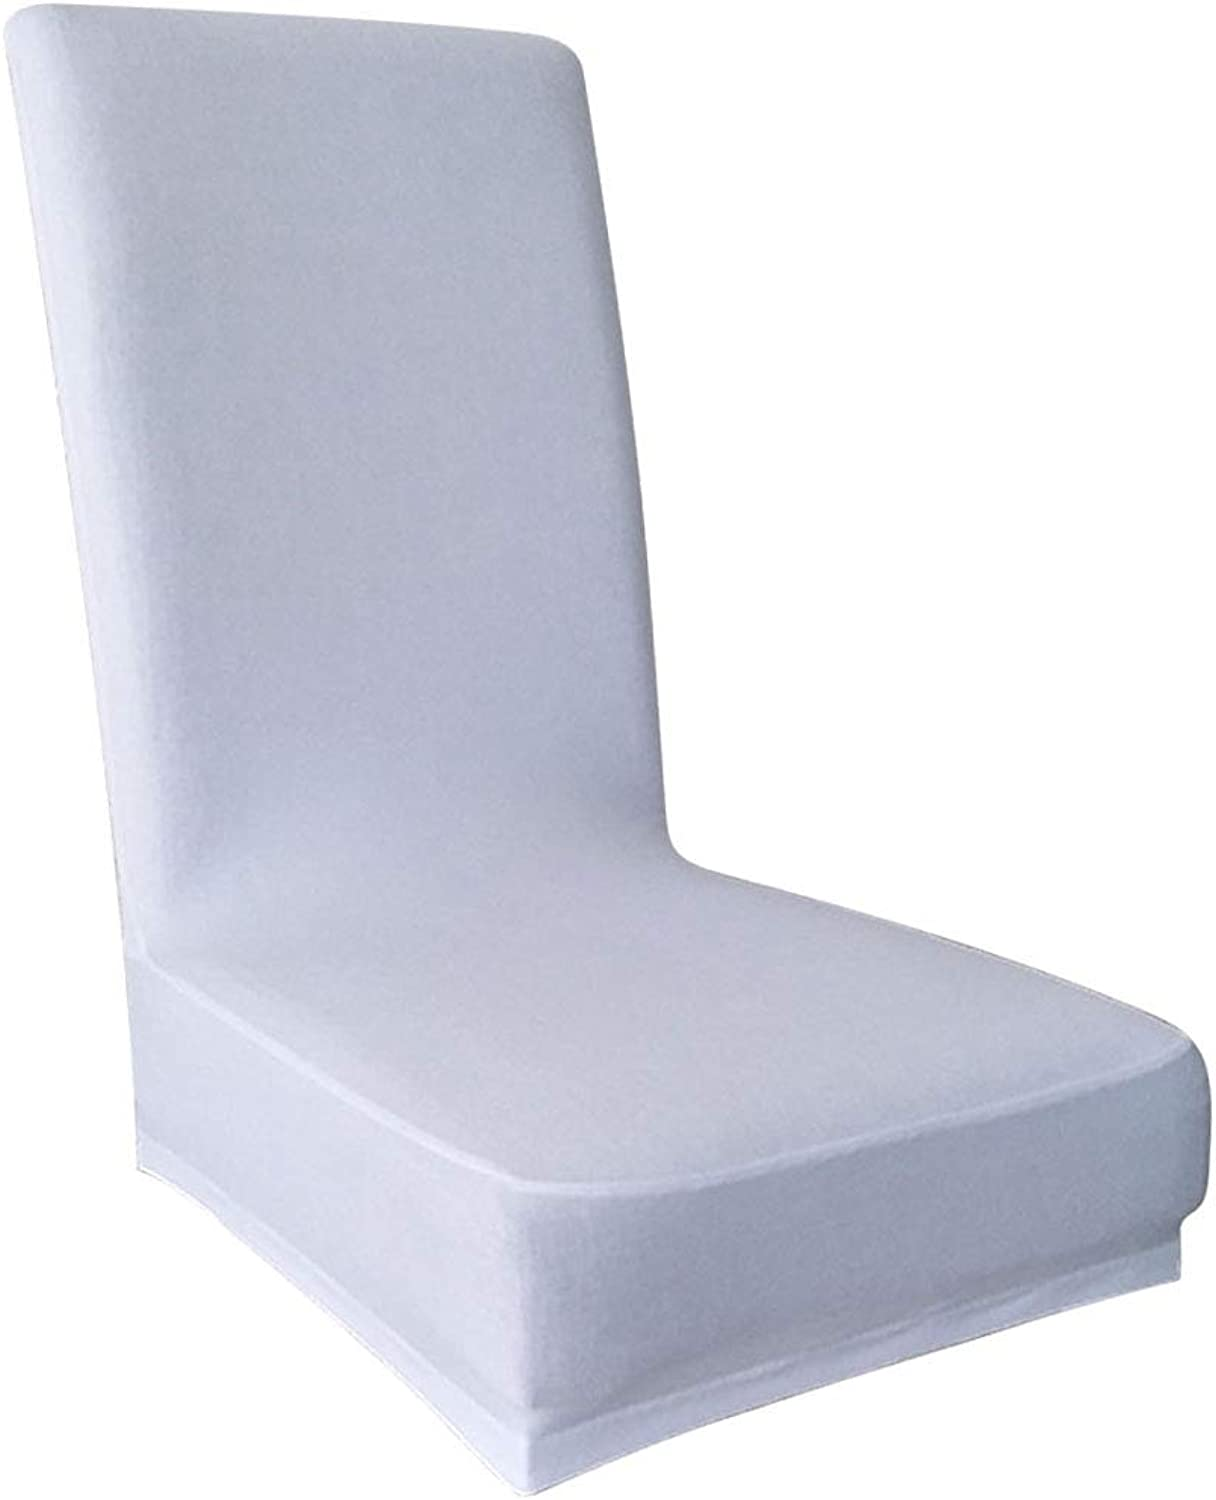 TOPBATHY 6pcs Polyester Elastic HalfCover Pure color Chair Chair